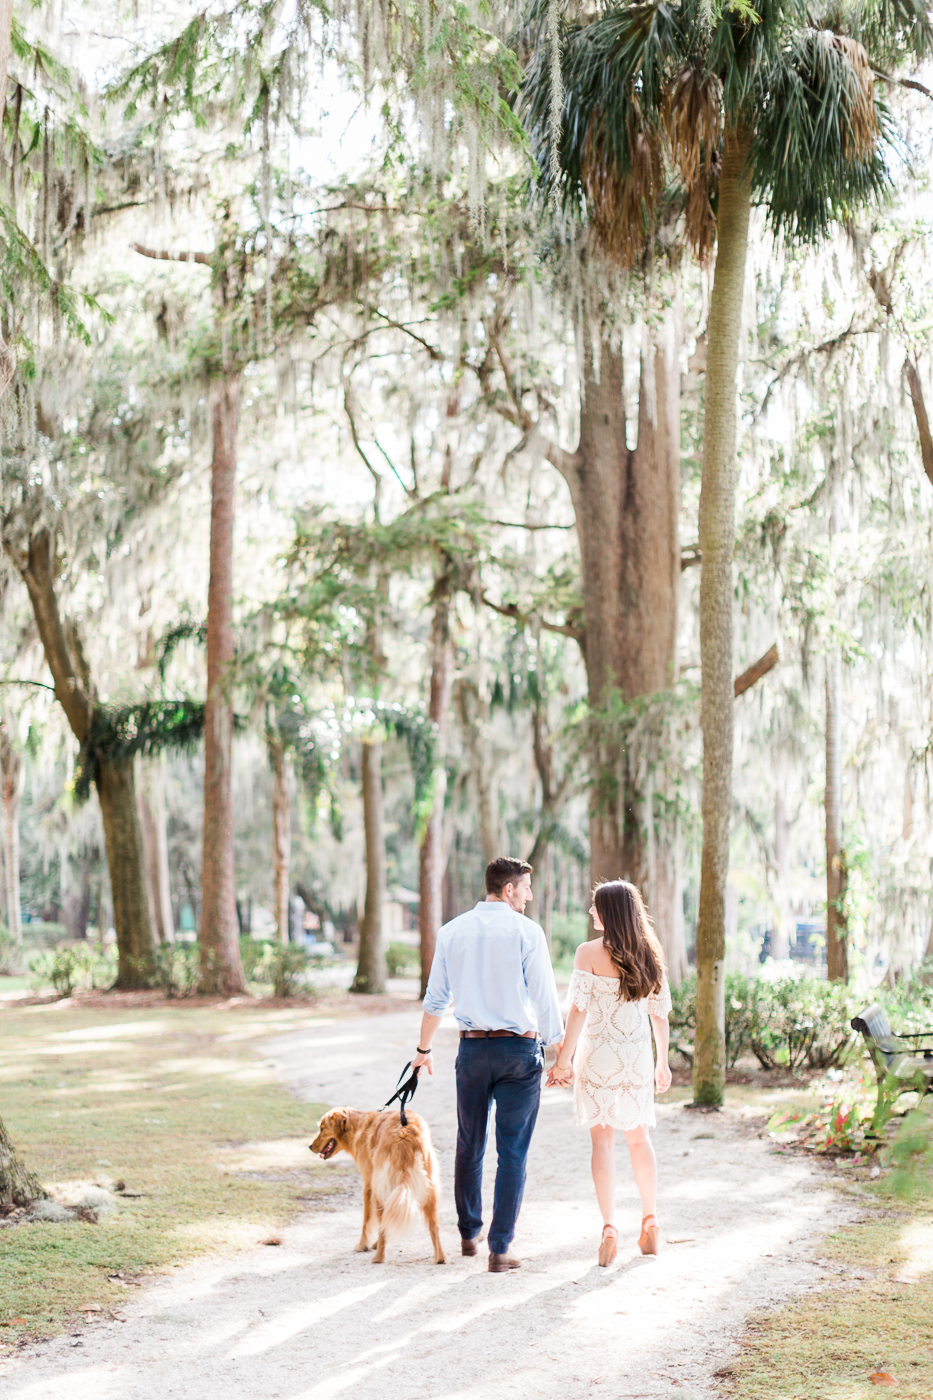 Kara + Ricky - Rollins college, winter park  |  florida